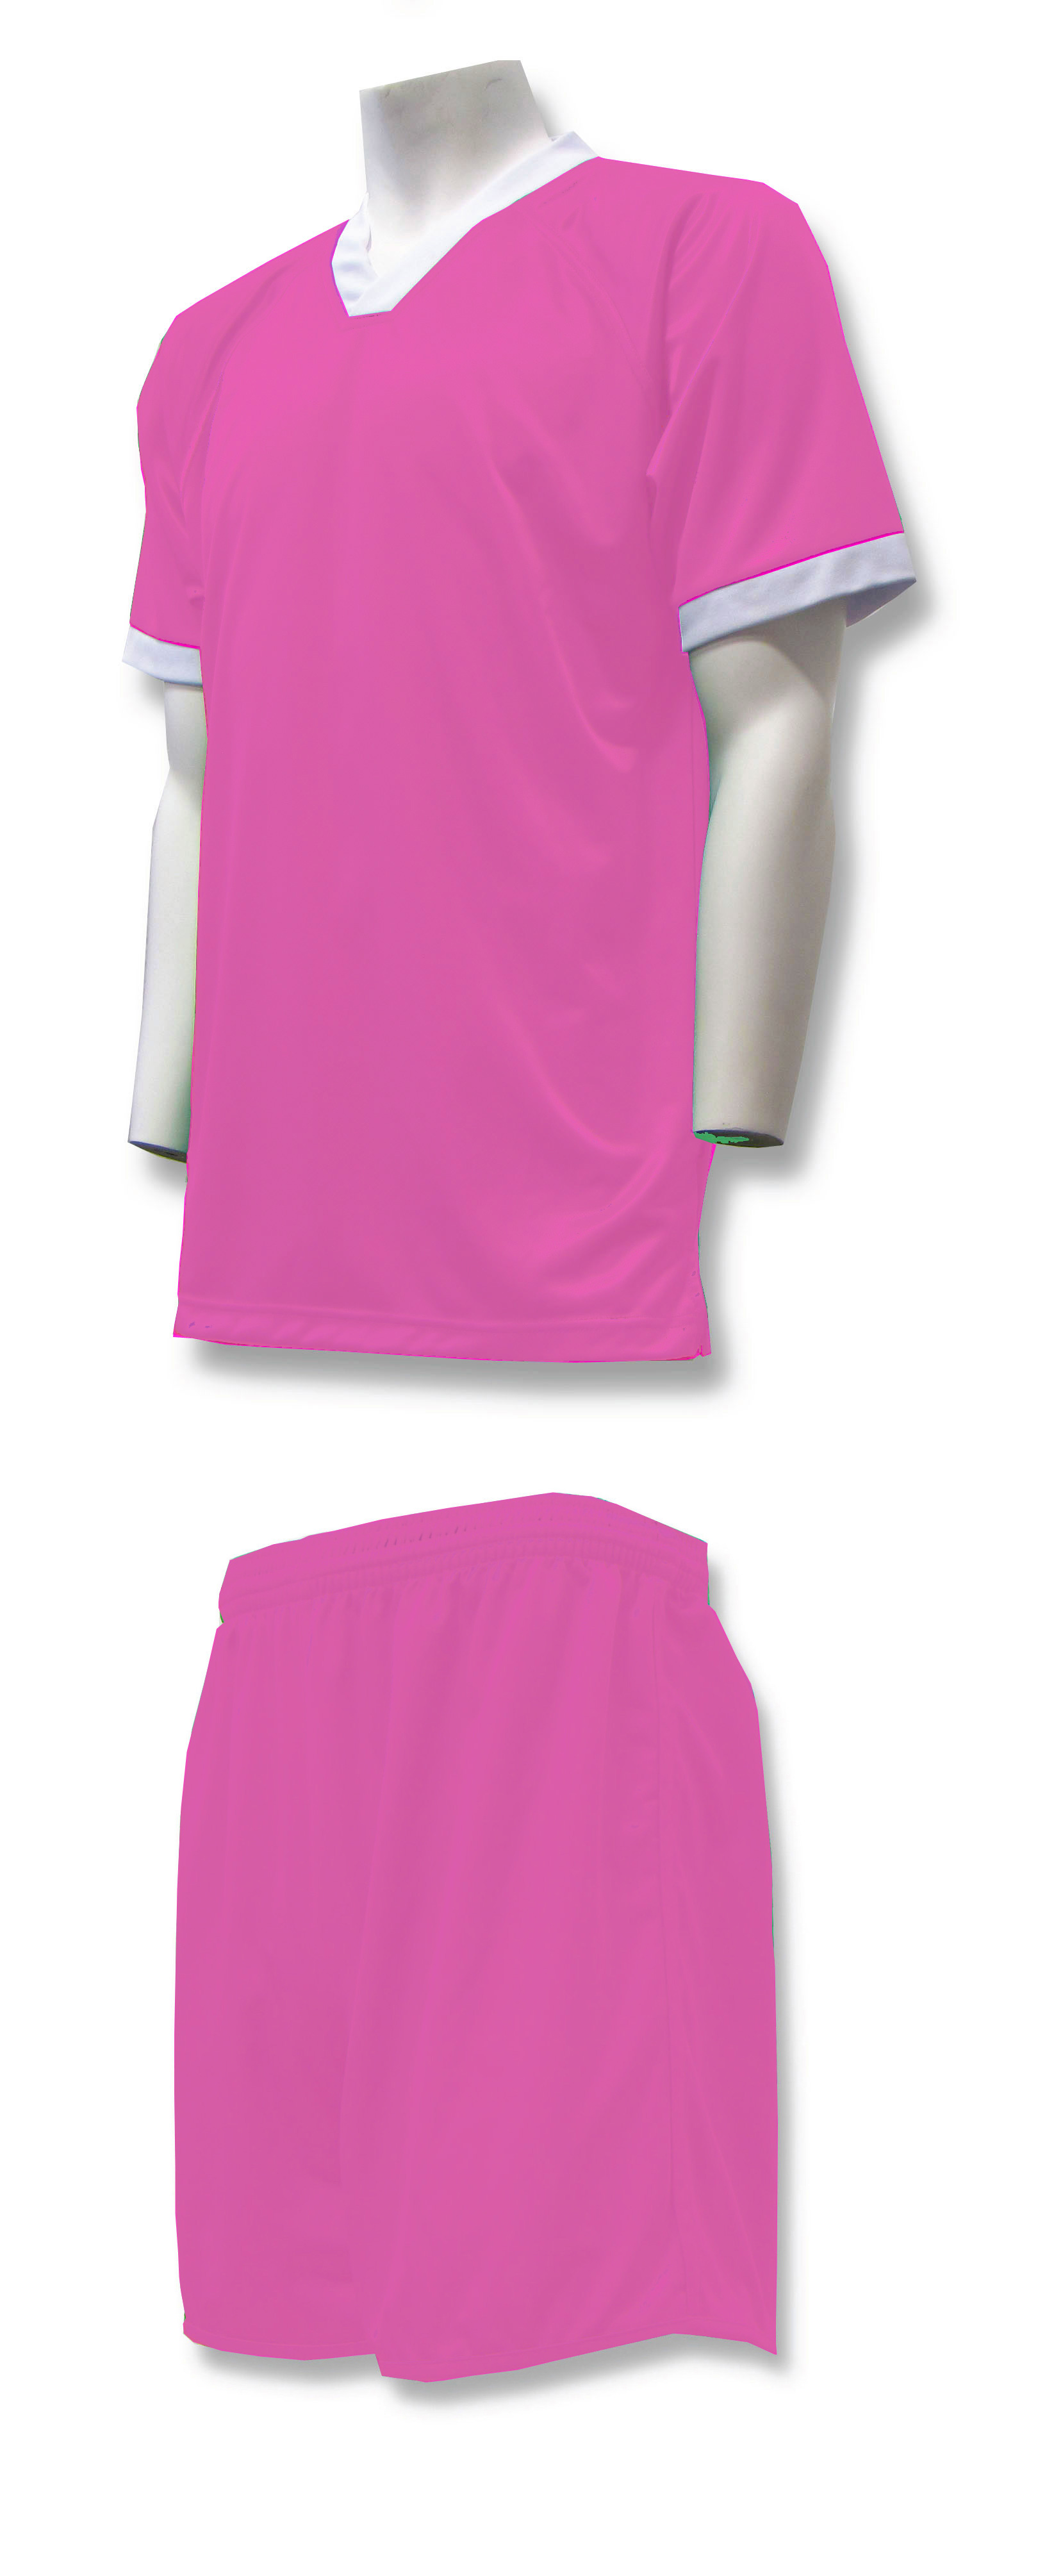 Forza soccer uniform kit in pink by Code Four Athletics